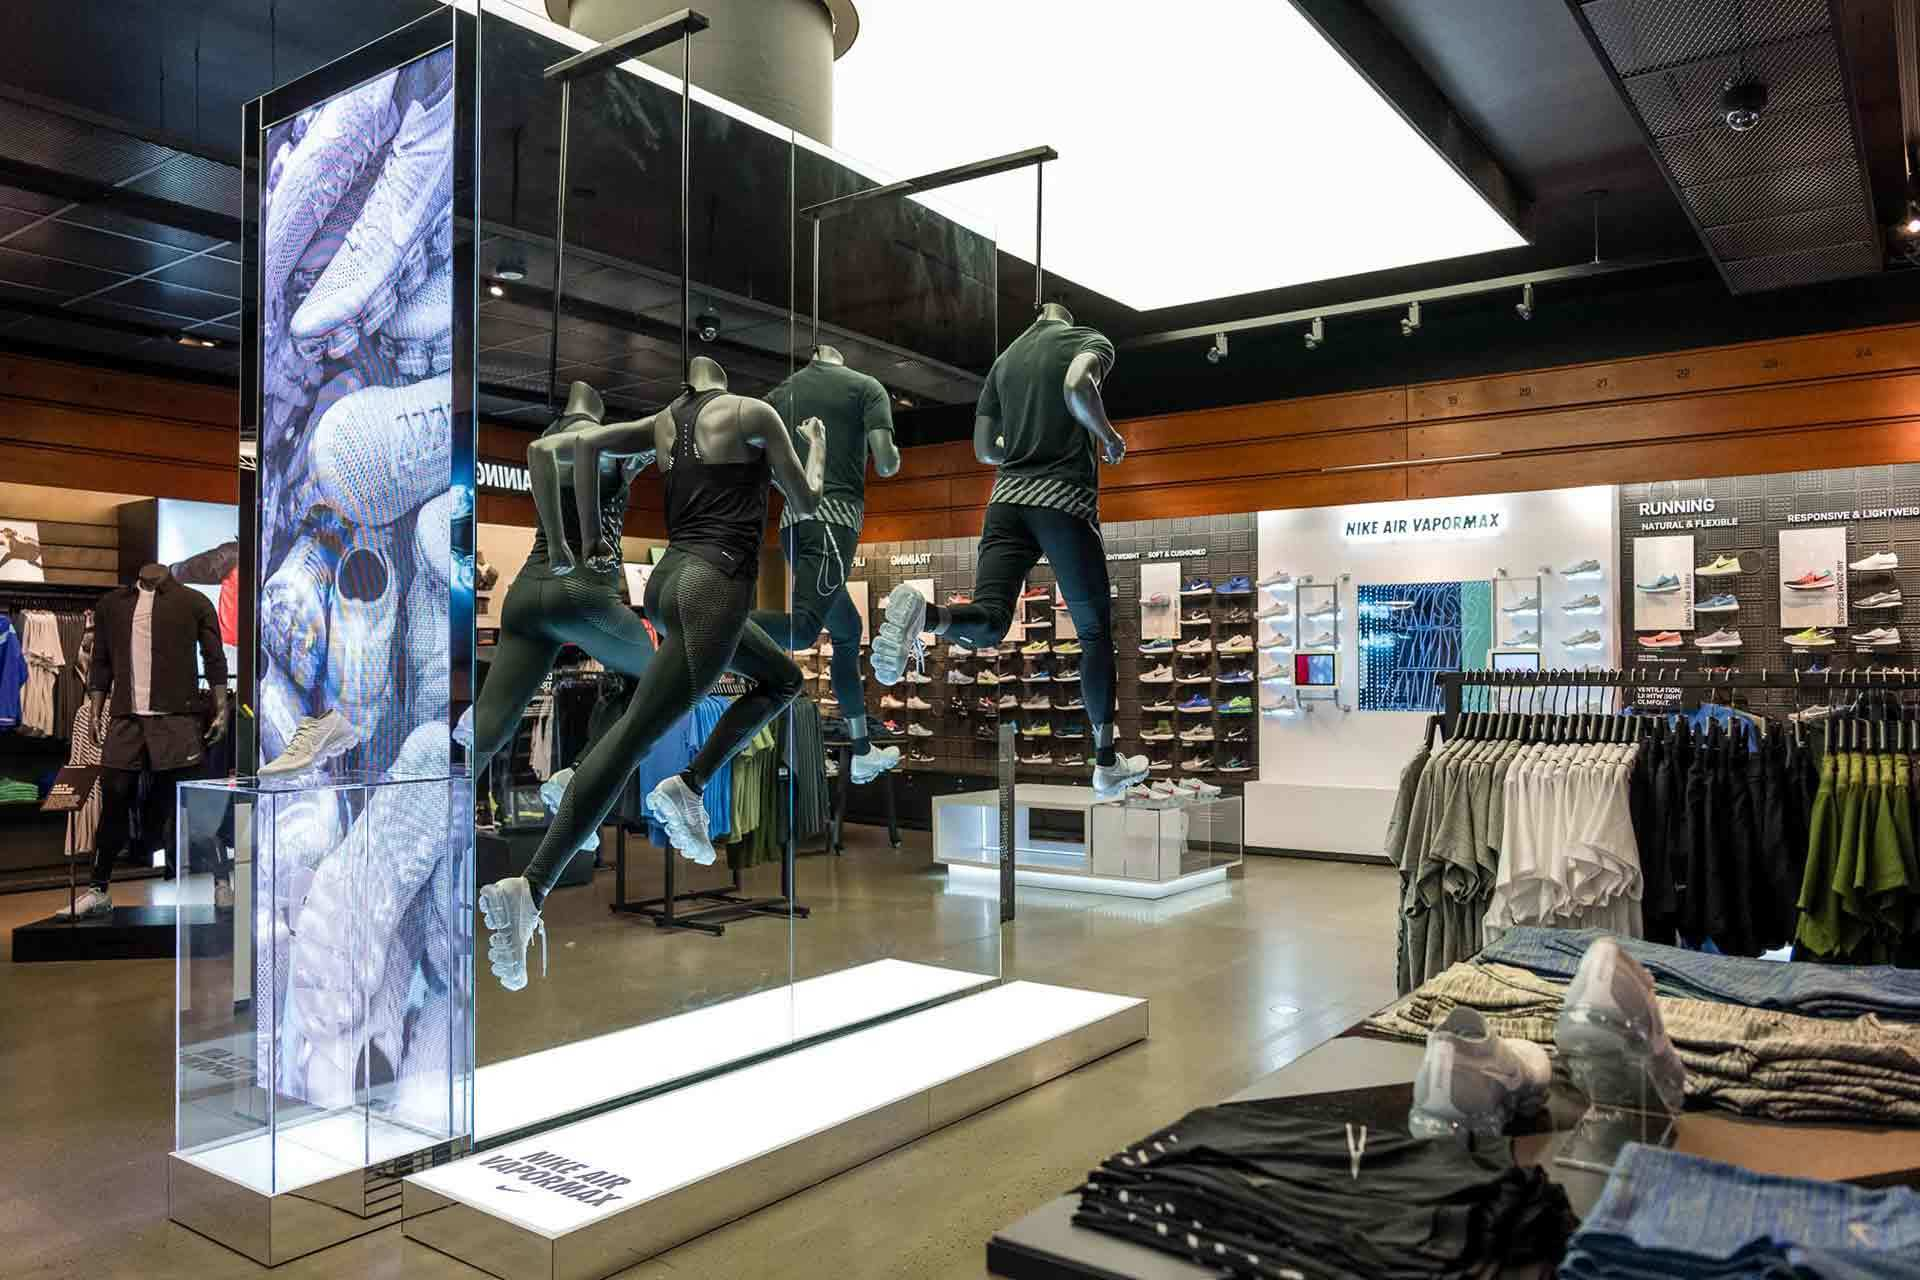 Nike Vapormax Retail Interior Environment Sport Activation Custom Product Display